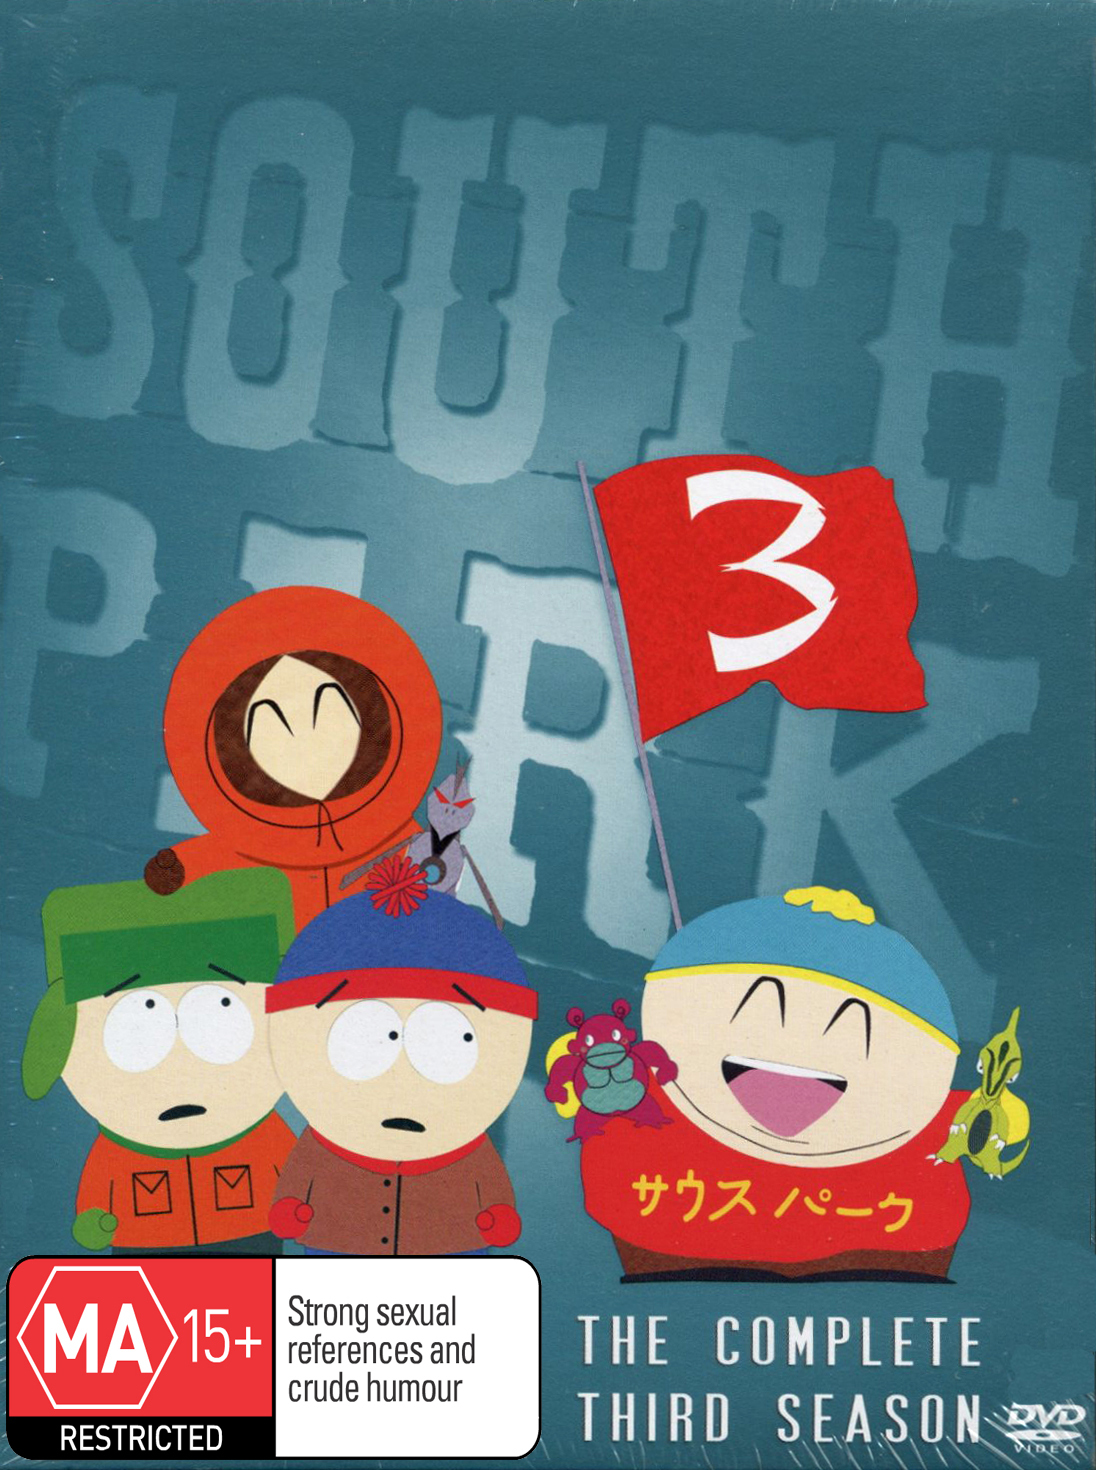 South Park - The Complete 3rd Season (3 Disc Box Set) on DVD image